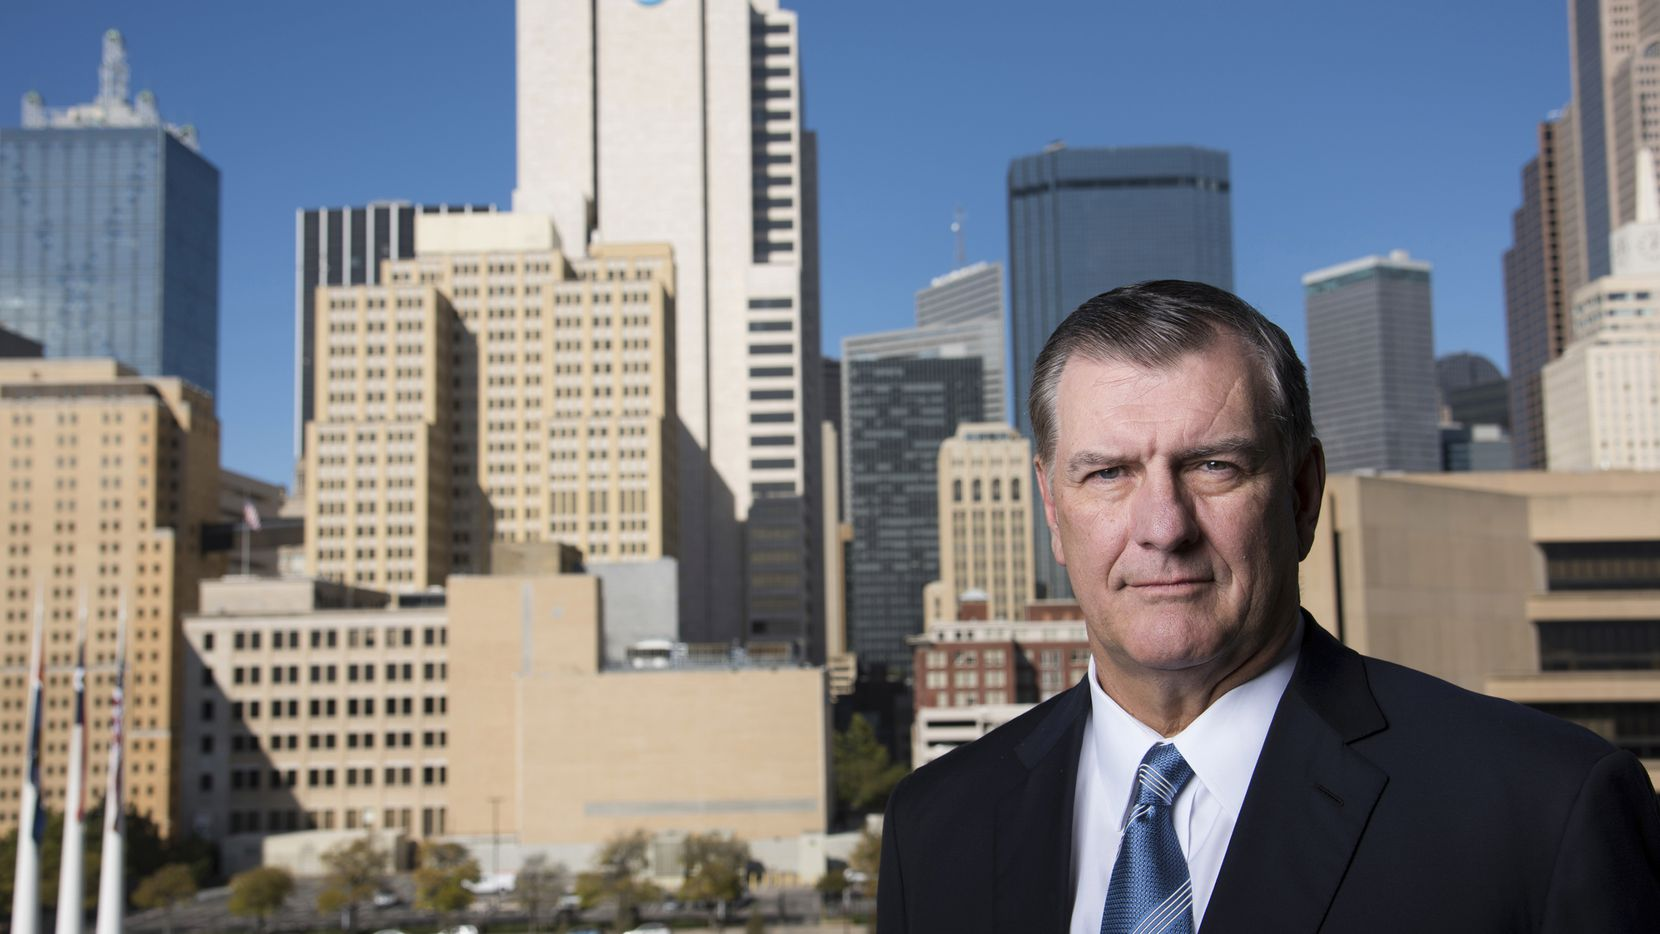 Mike Rawlings, the mayor of Dallas, stood in front of the city landscape last month. The city's pension fund for police and firefighters is near collapse and is seeking an immense bailout, a request that threatens to push the city into bankruptcy.